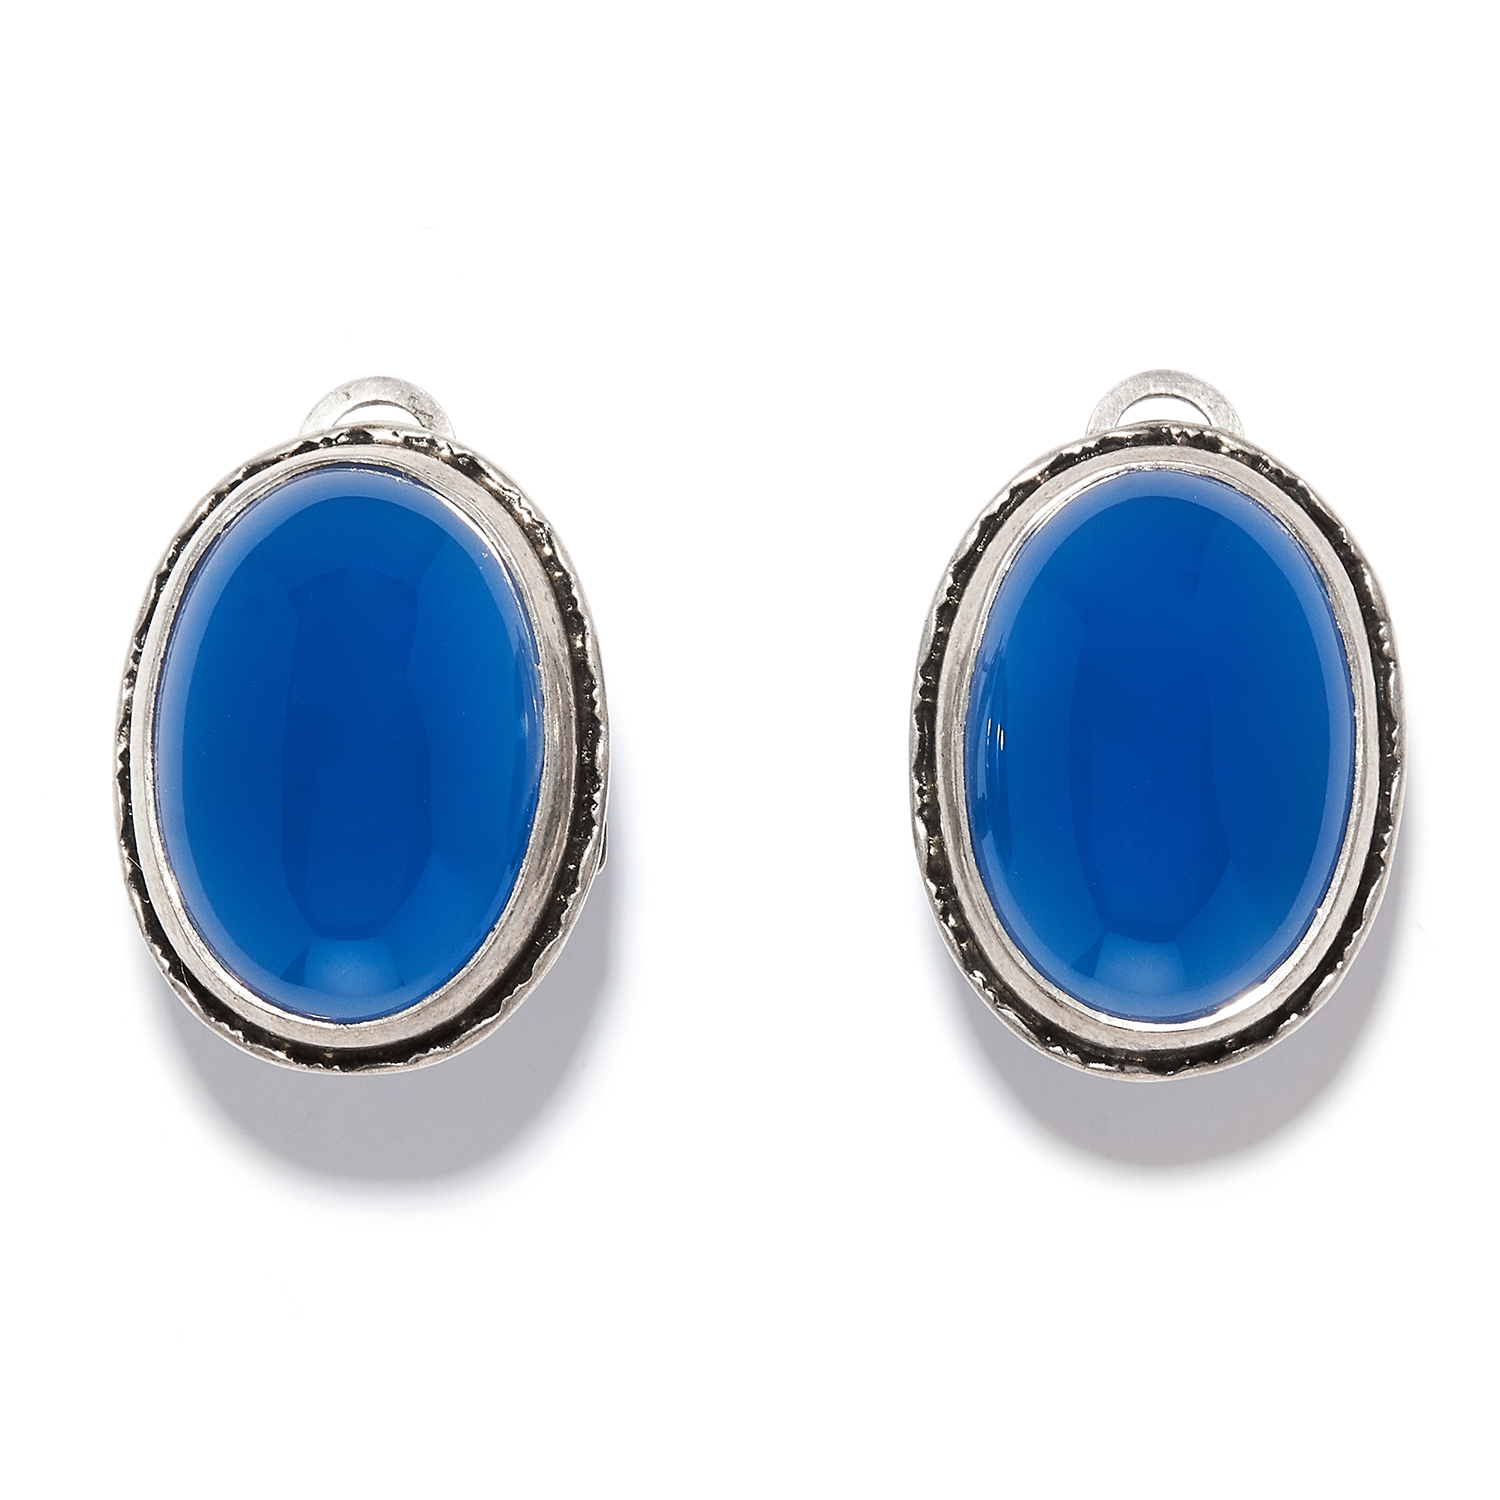 A PAIR OF BLUE STONE EARRINGS in sterling silver, each set with a cabochon blue gemstone, stamped